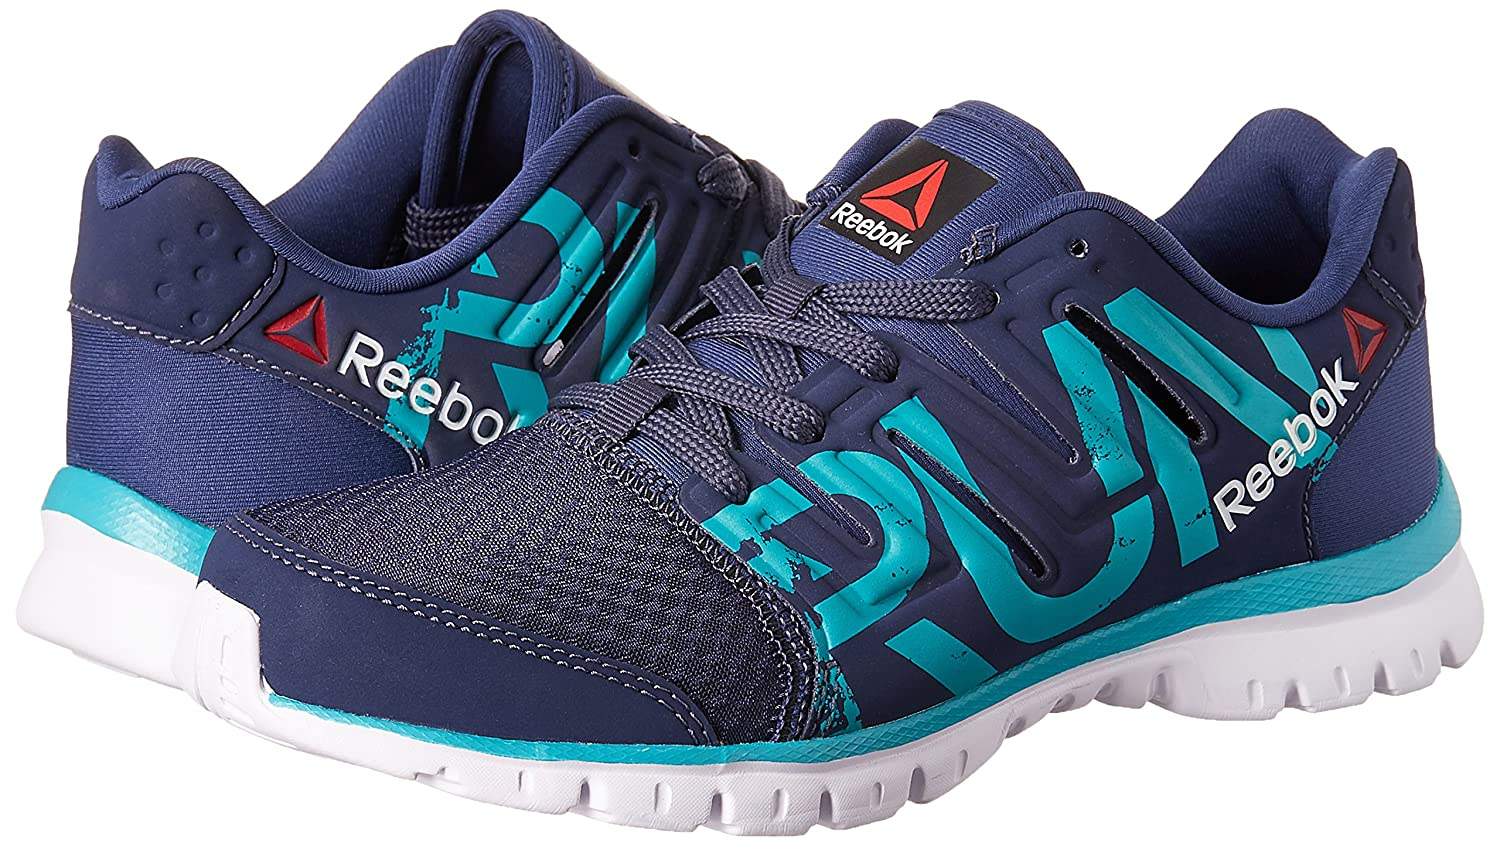 Reebok Salg I India xR6nFgi